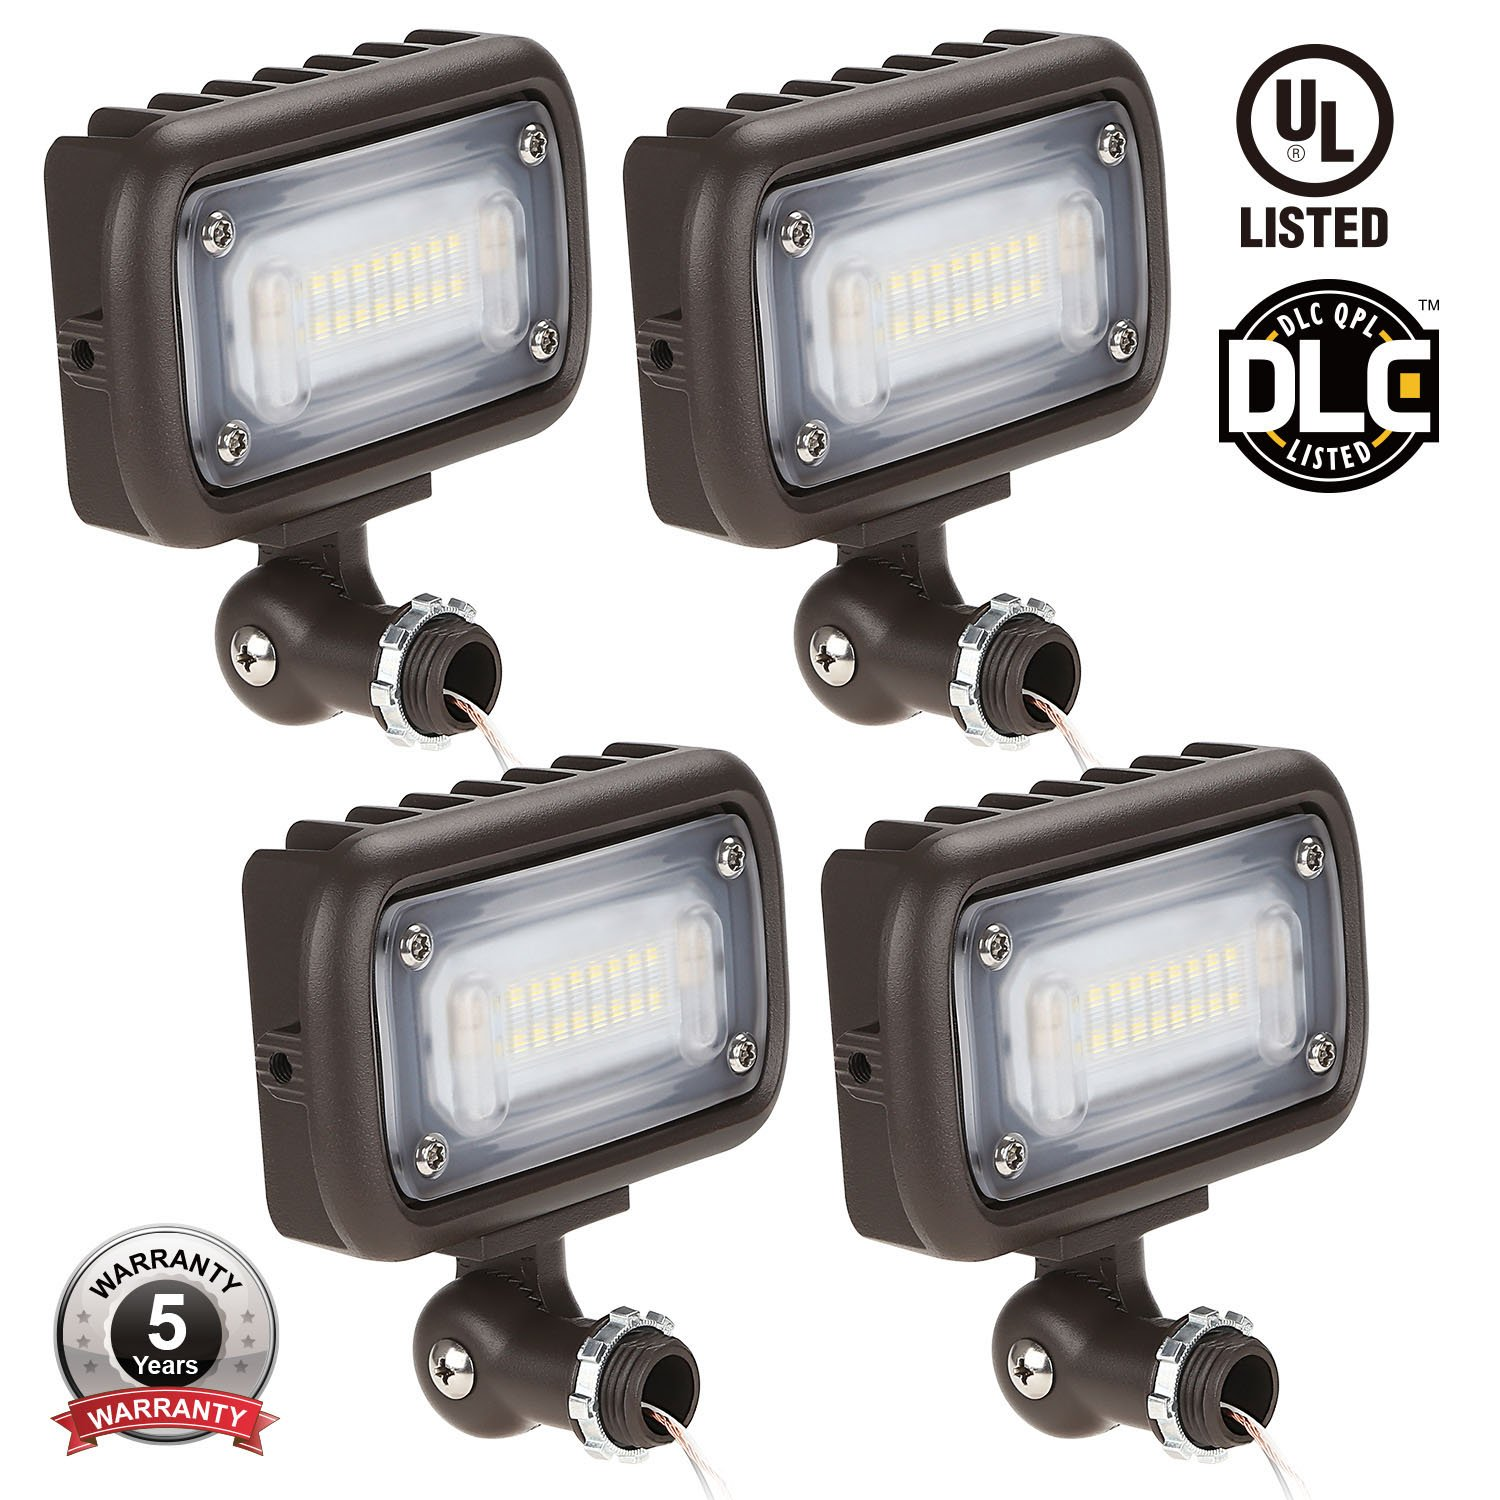 15W Outdoor LED Flood Light, 100W MH Equivalent, 1/2'' Adjustable Knuckle Mount, 1600lm, 5000K Daylight, 120-277V, Waterproof Security Landscape Lighting, UL-listed, 5 YEAR WARRANTY, Pack of 4